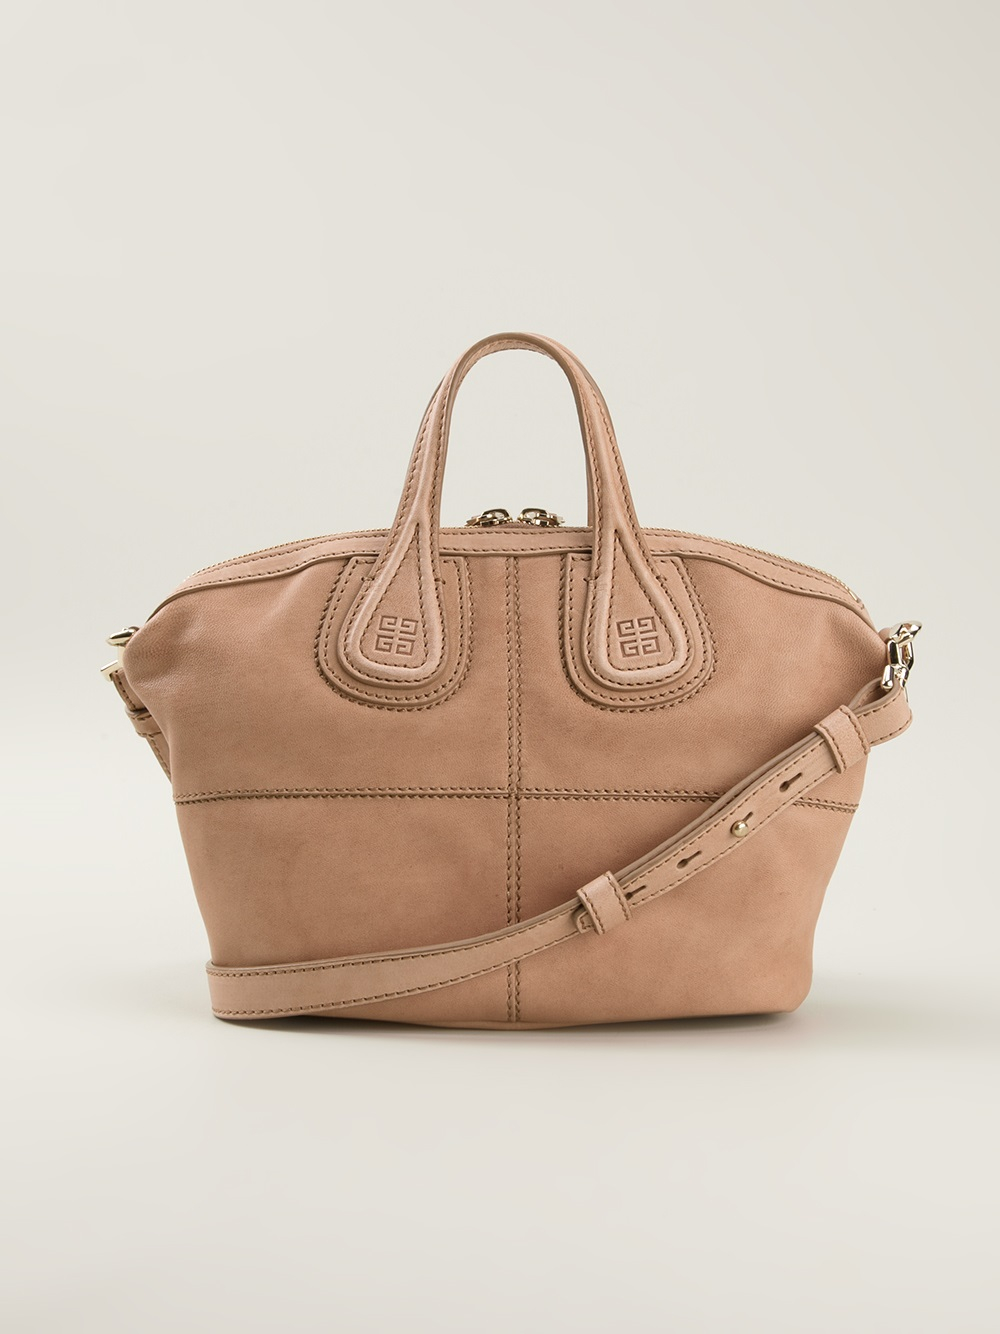 33f8143be784 Lyst - Givenchy Micro Nightingale Tote in Natural